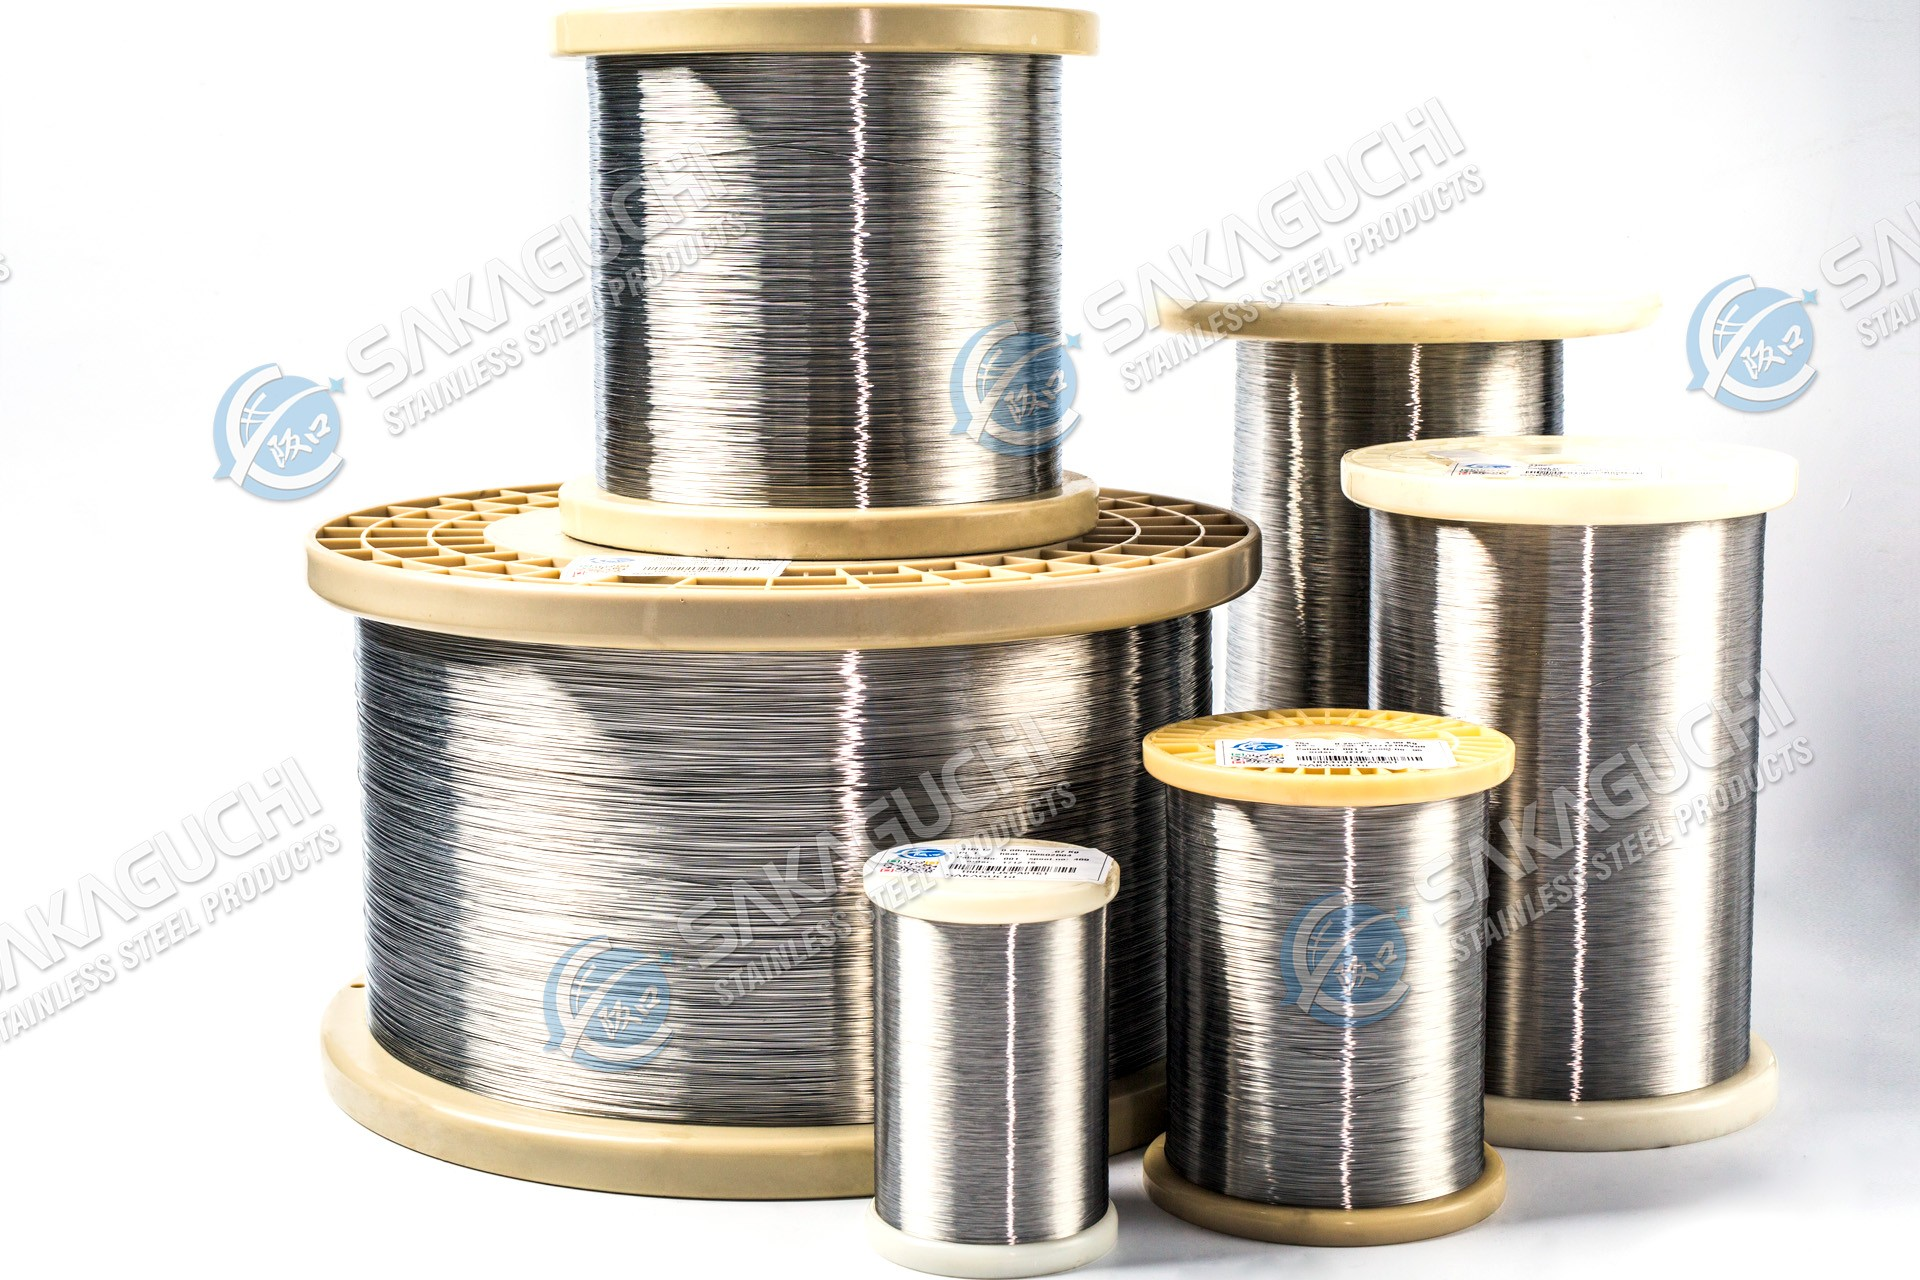 316 Stainless steel wire Manufacturers, 316 Stainless steel wire Factory, Supply 316 Stainless steel wire